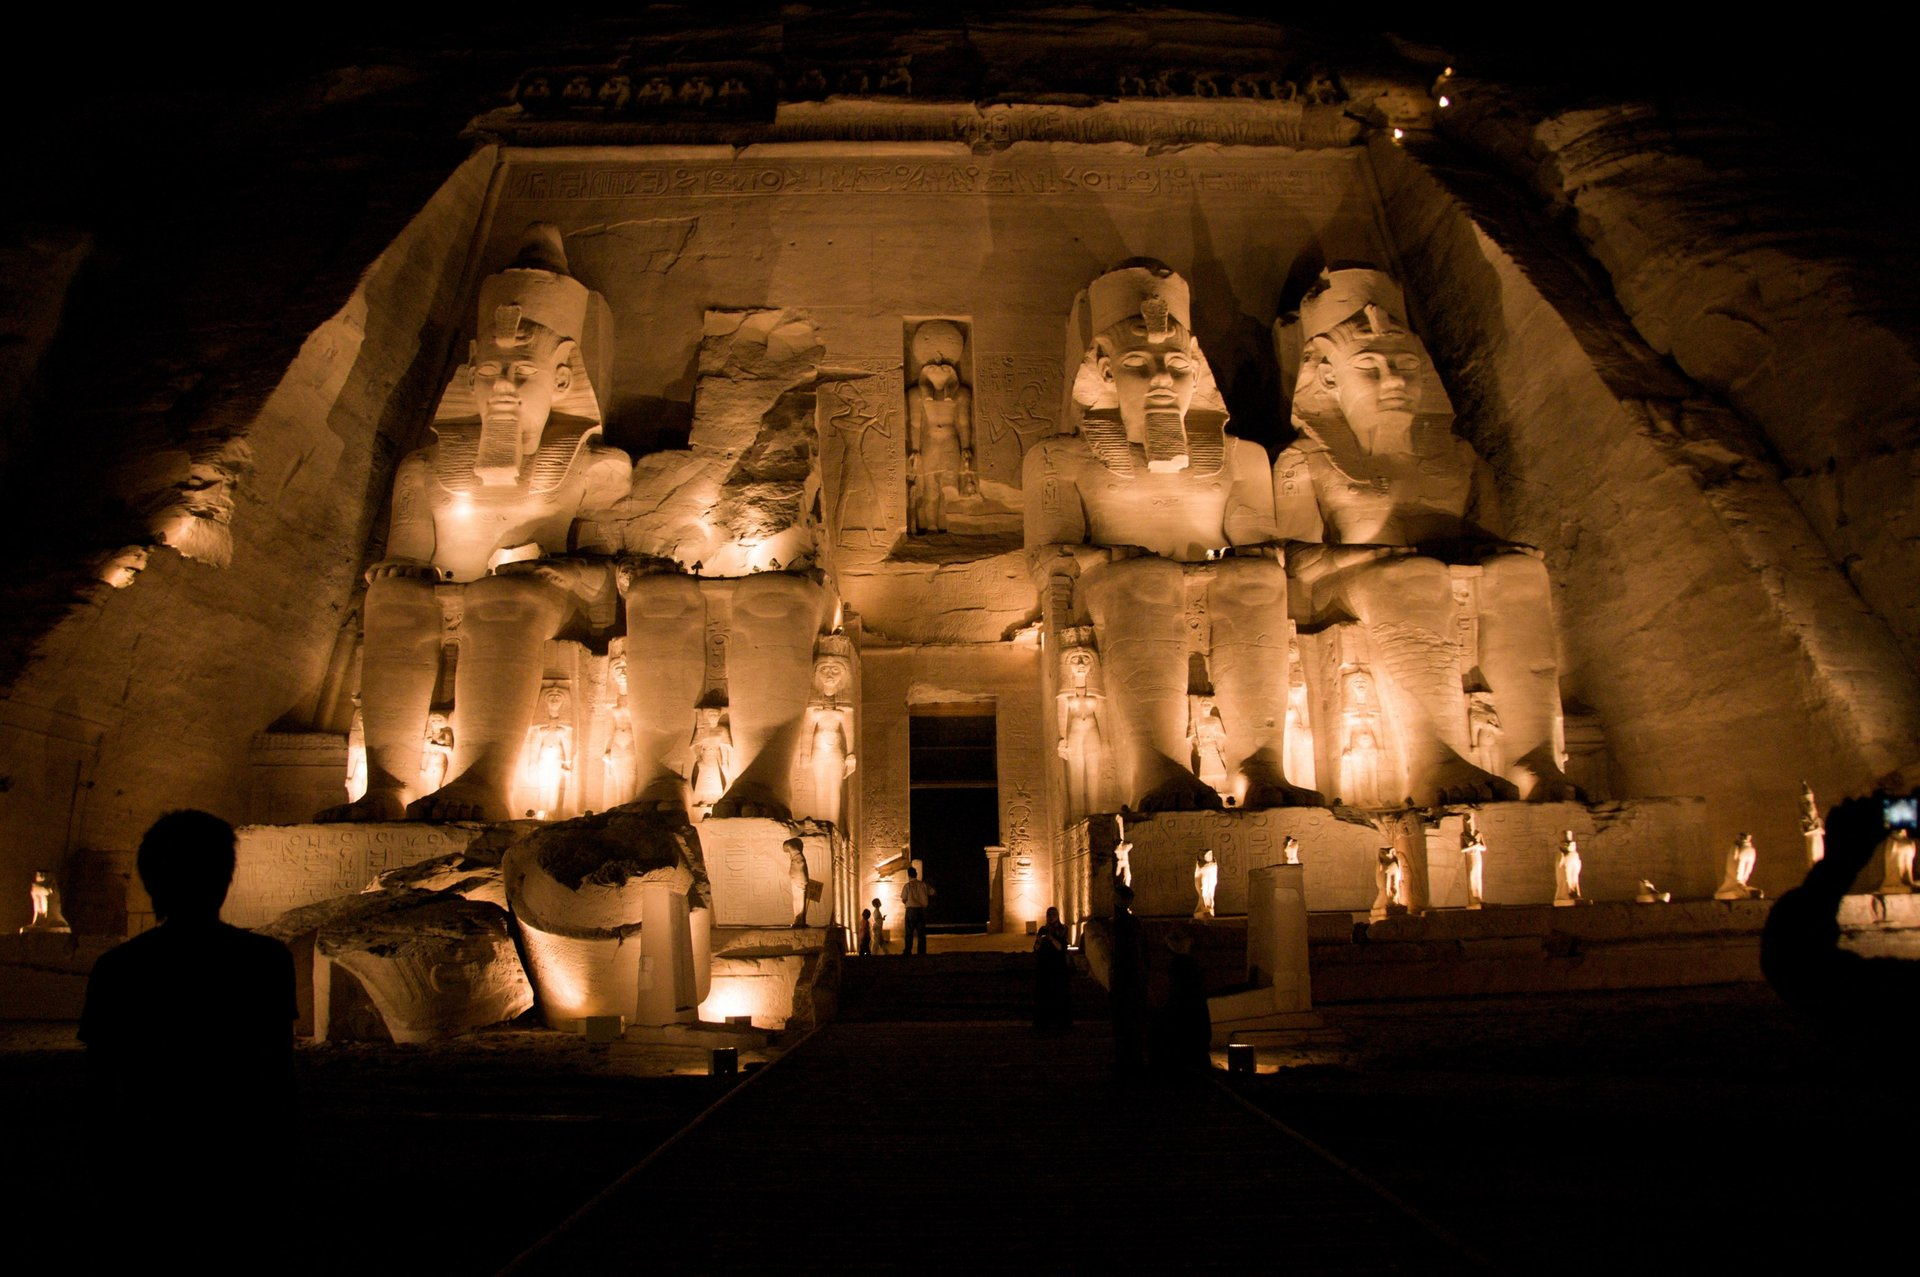 Sound and Light, Abu Simbel 2020